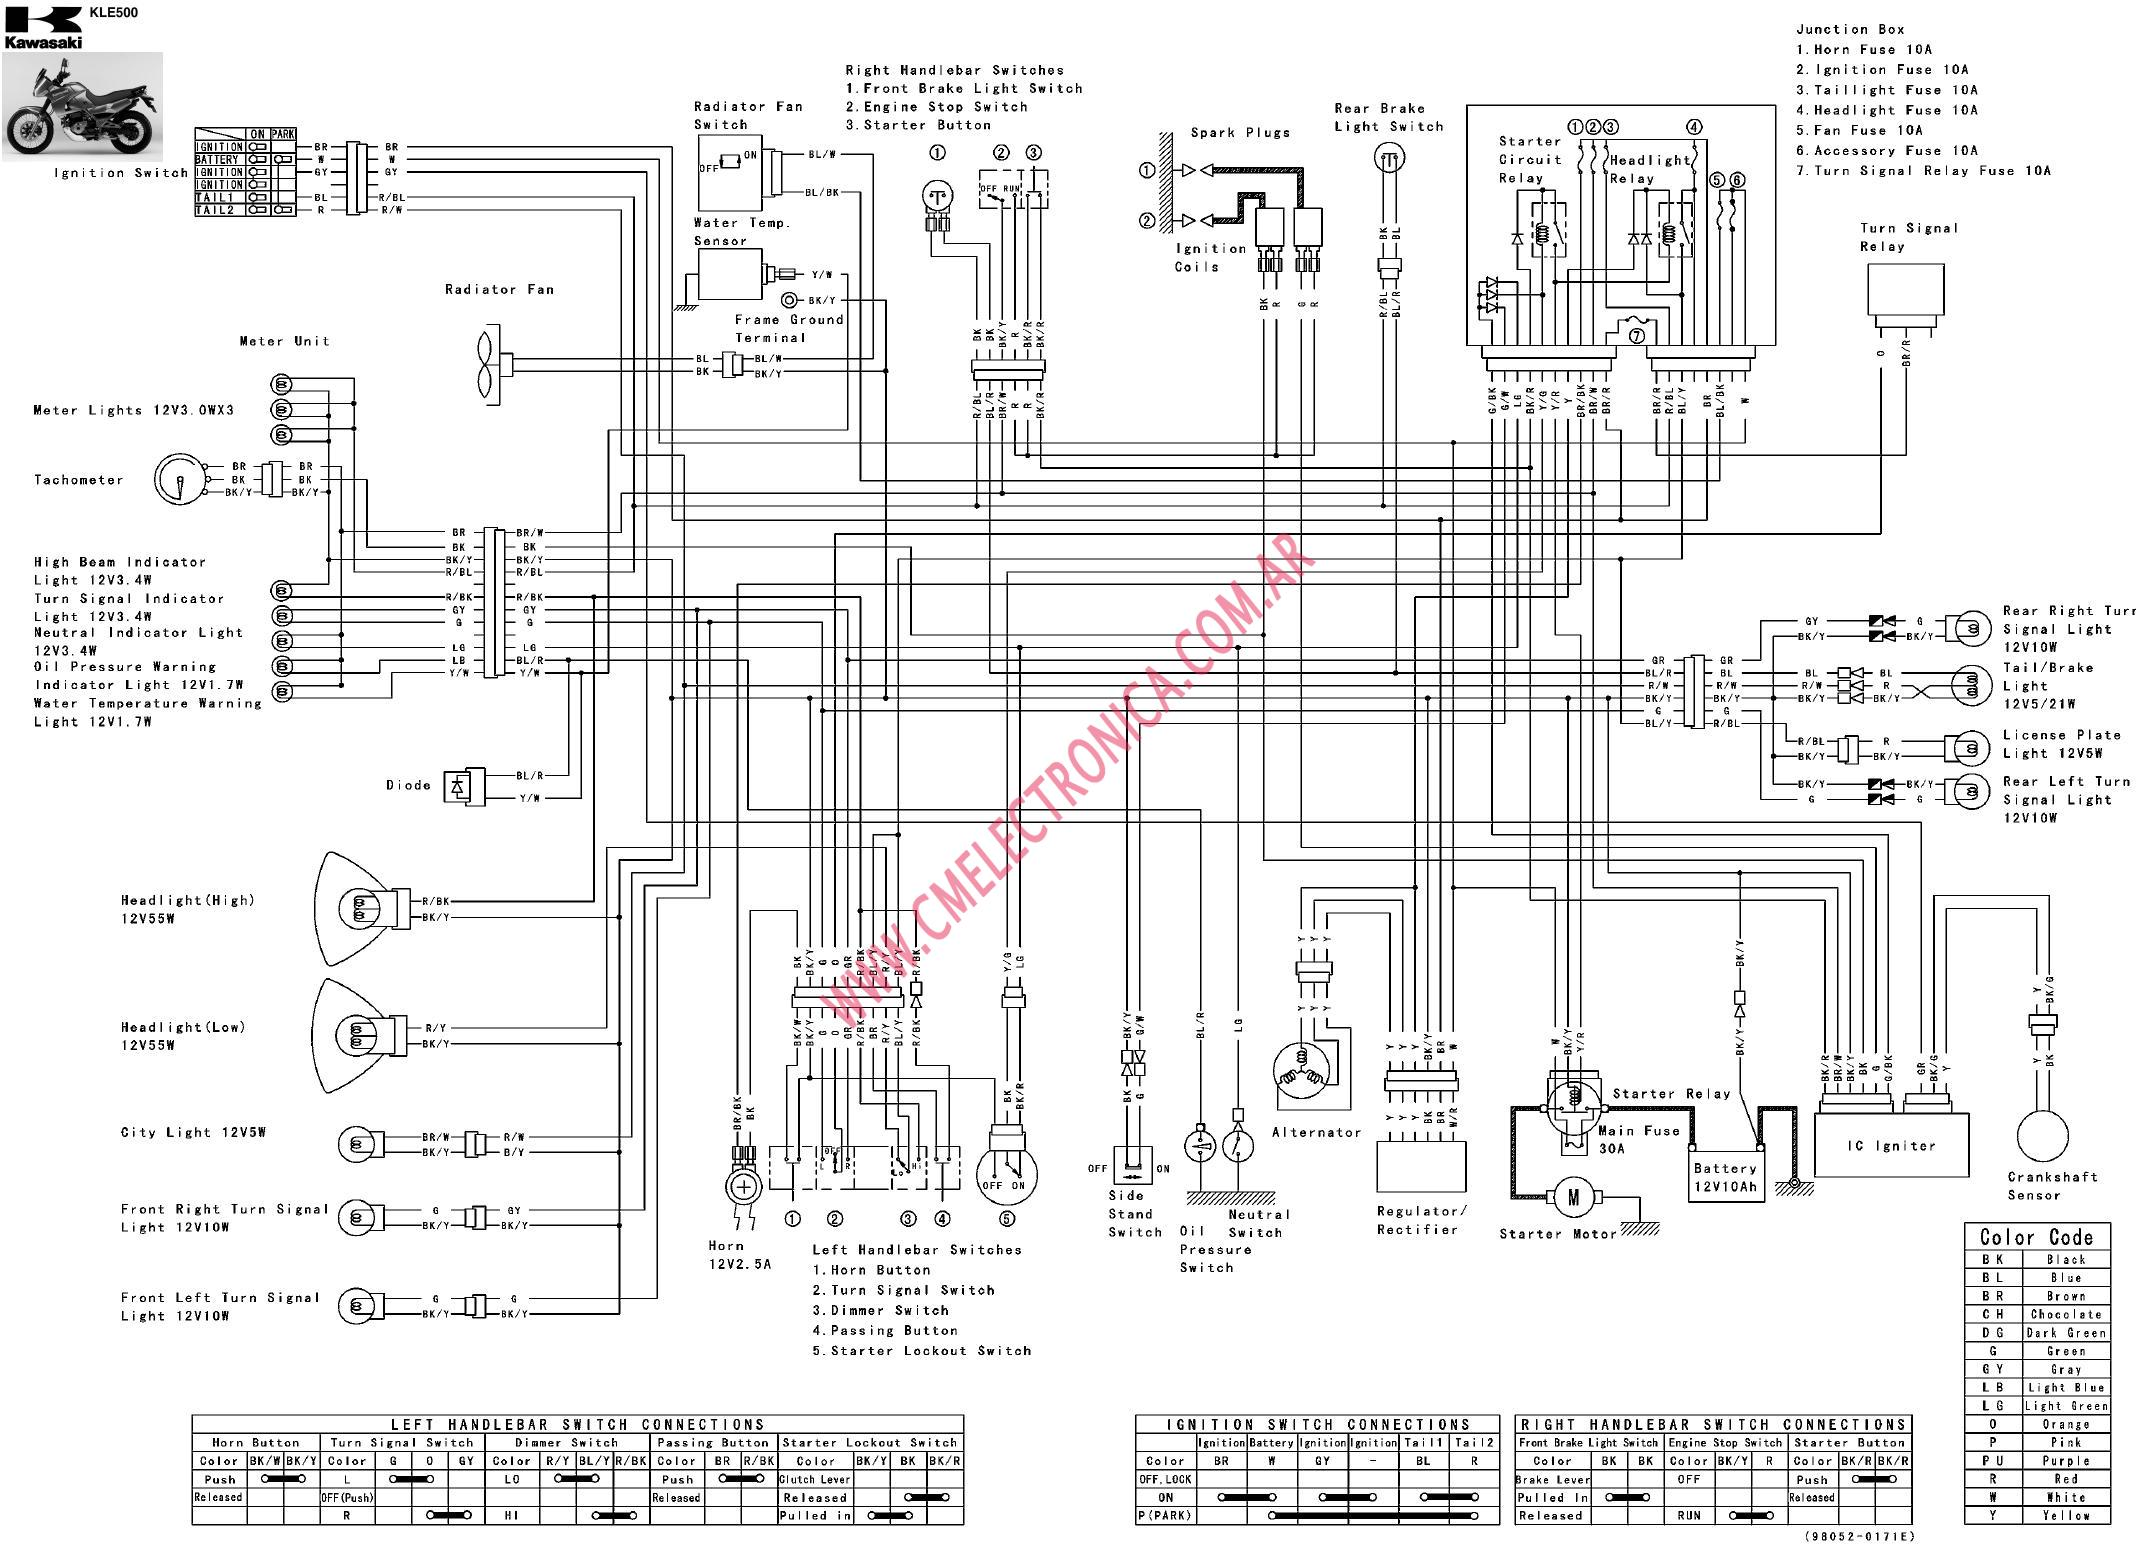 1985 kawasaki bayou 185 wiring diagram images kawasaki mojave 250 pin diagram of kawasaki atv parts 1985 klf185 a1 bayou 185 rear fender